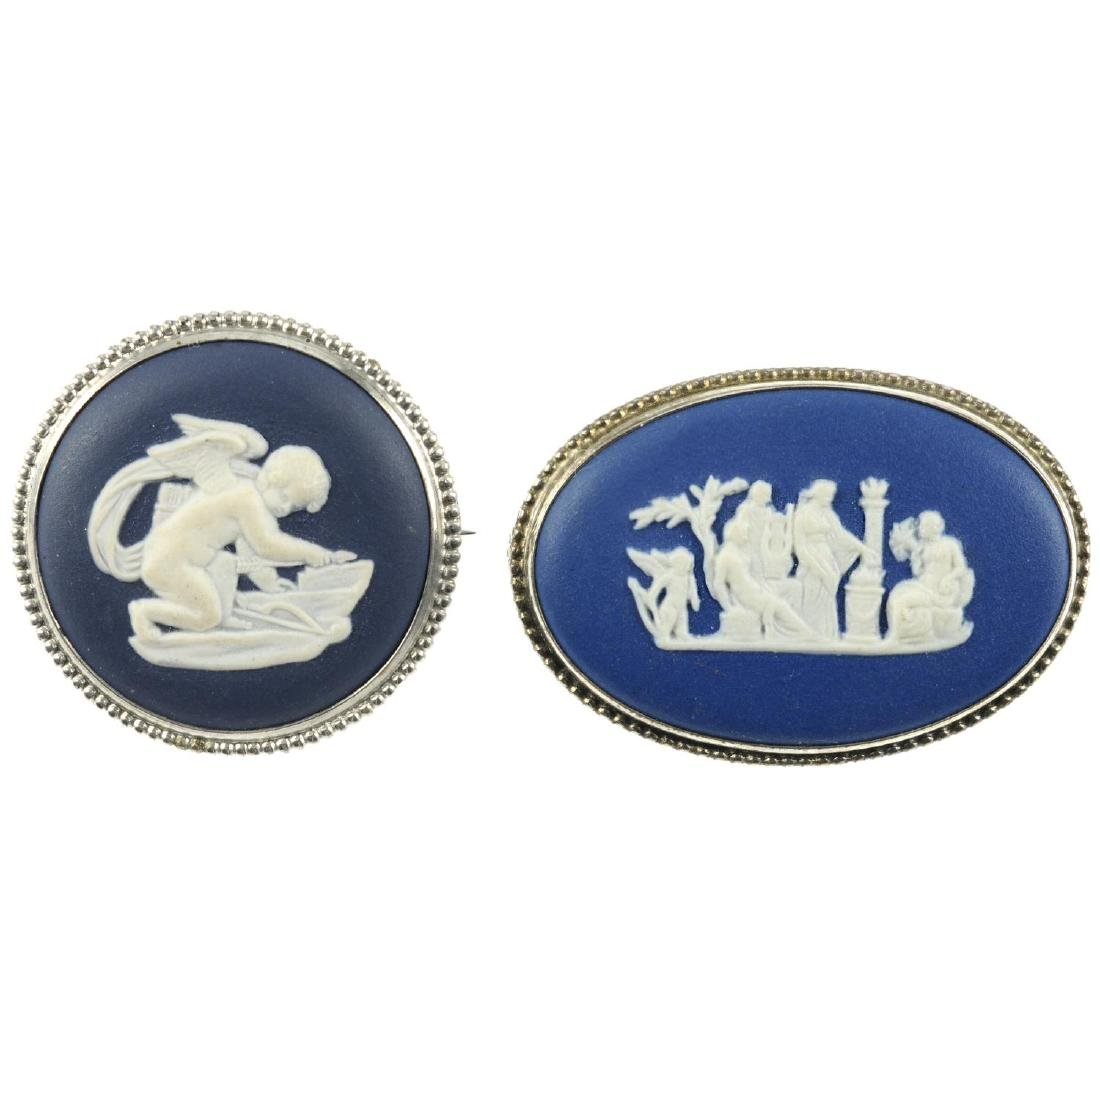 WEDGWOOD - seventeen items of jewellery and a single